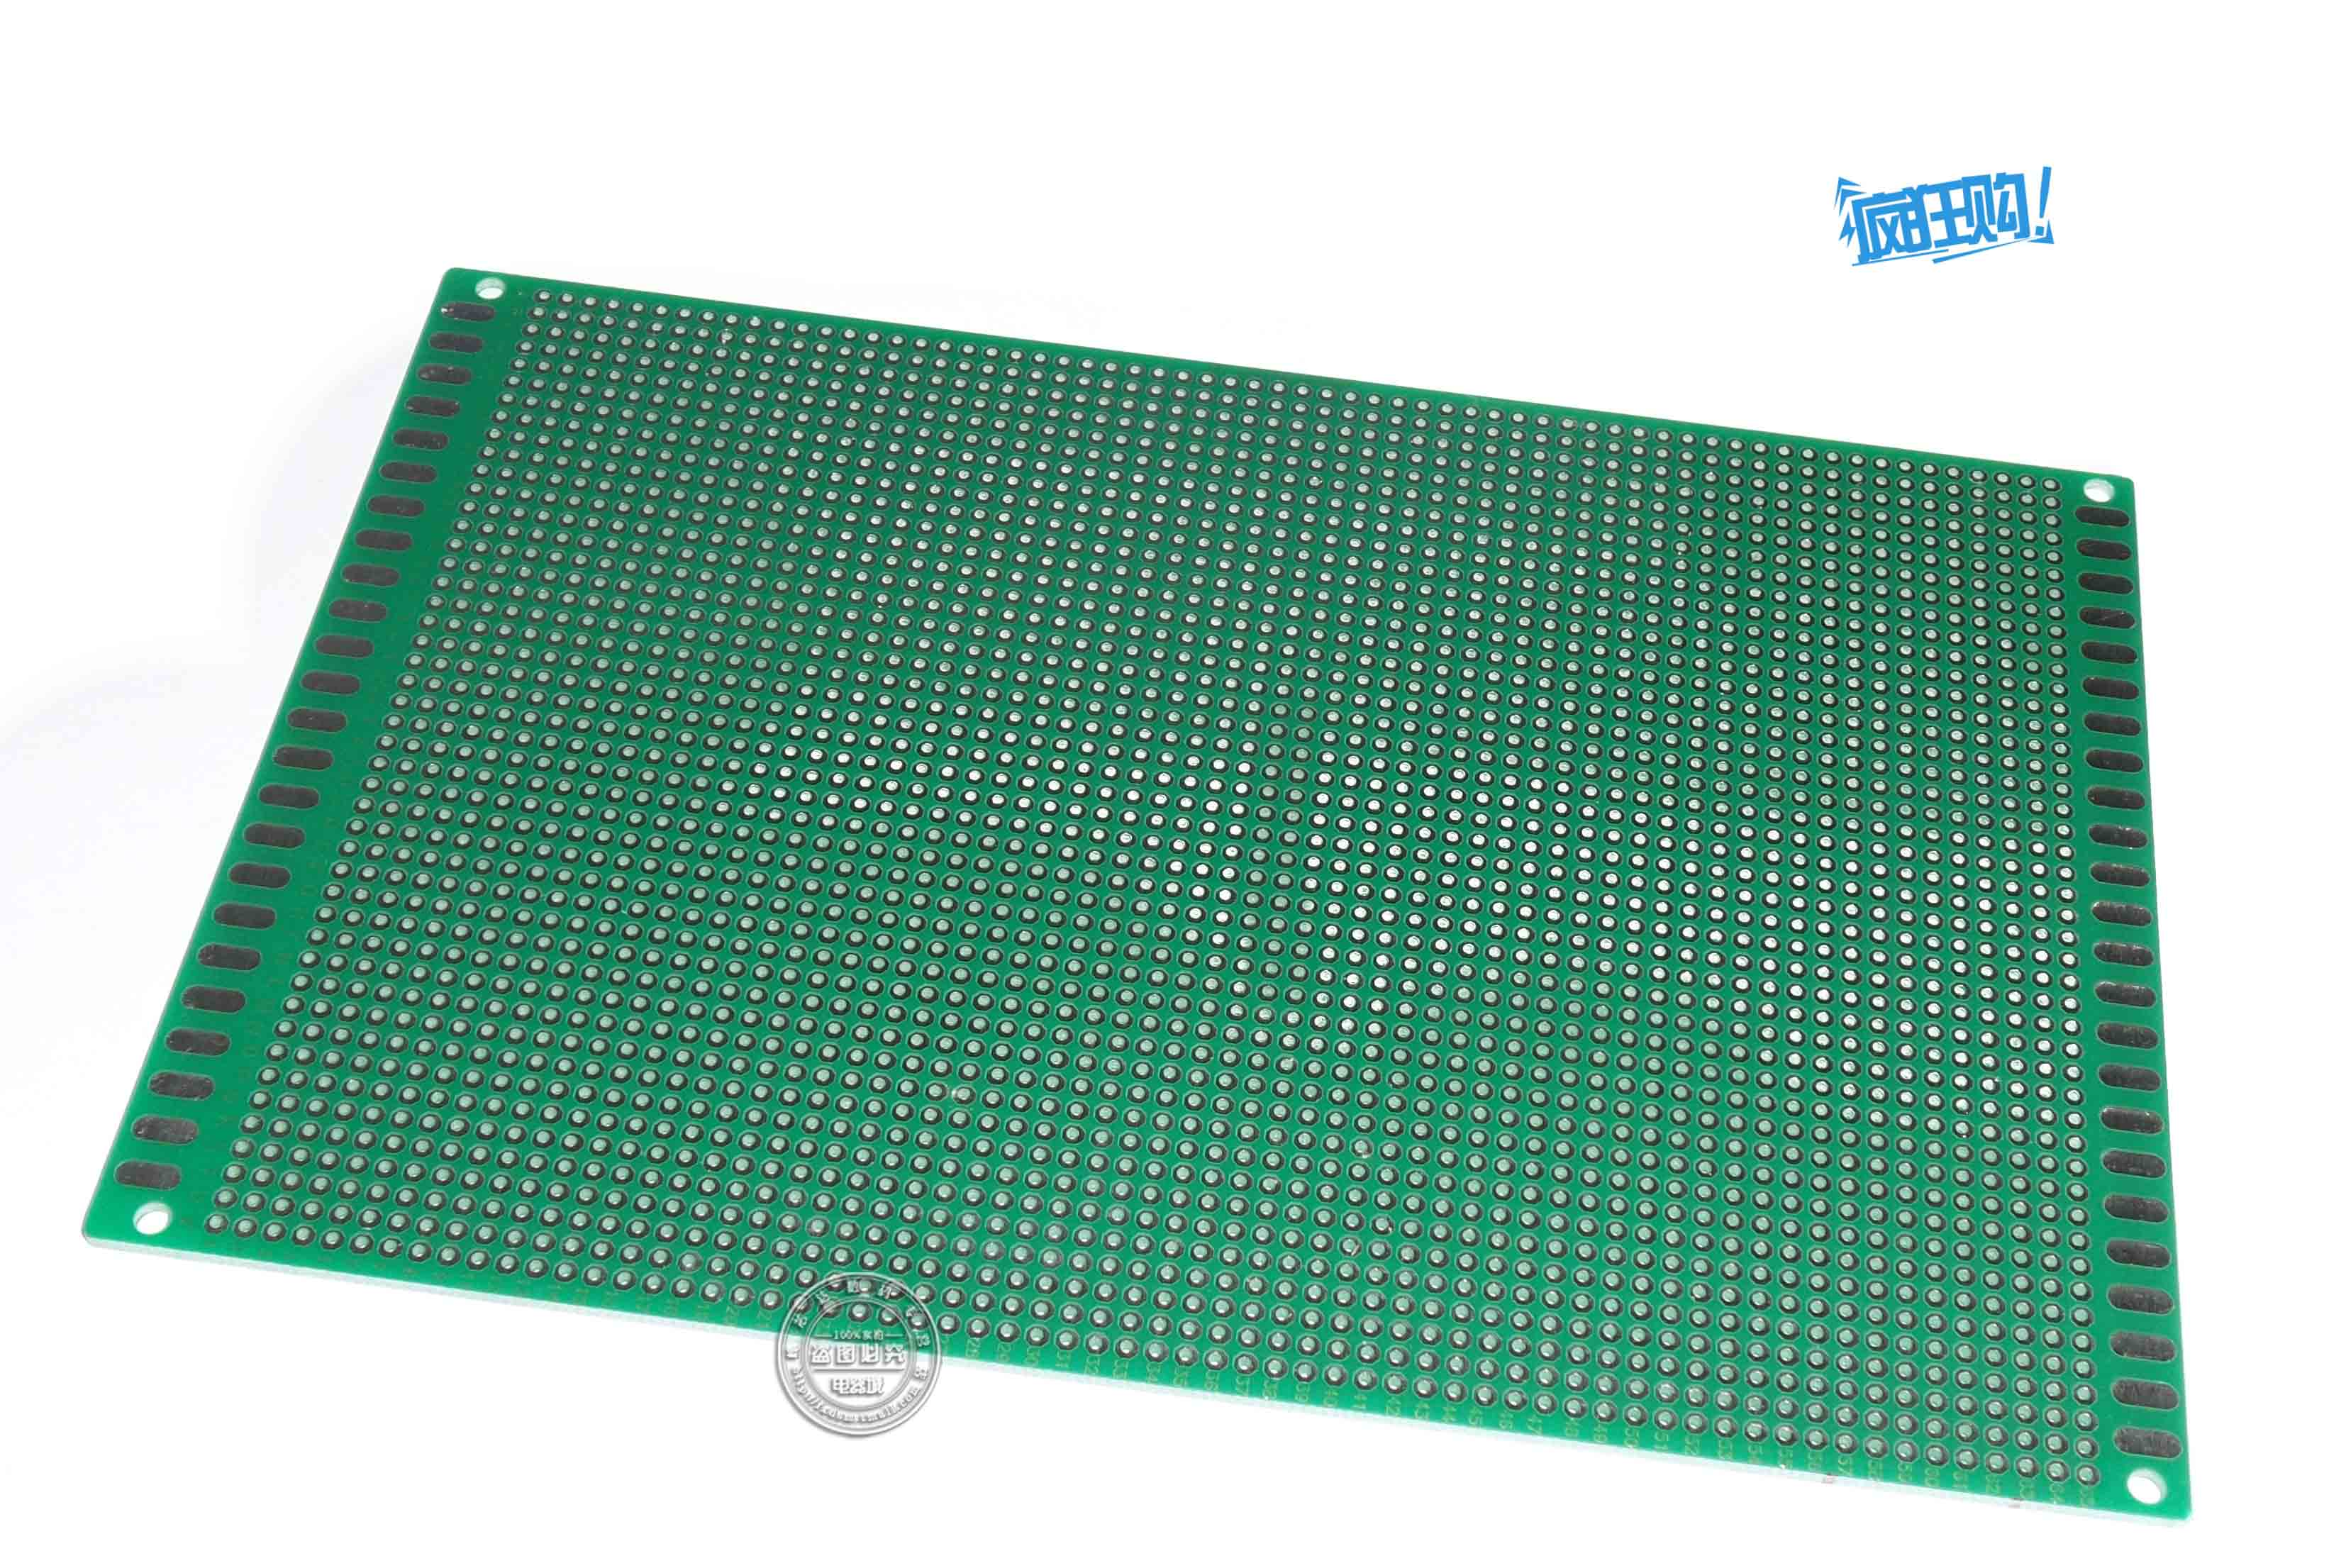 Rui broadcast shu green sided circuit board pcb board 12*18 cm cable line spacing 2.54mm tinplating hole board